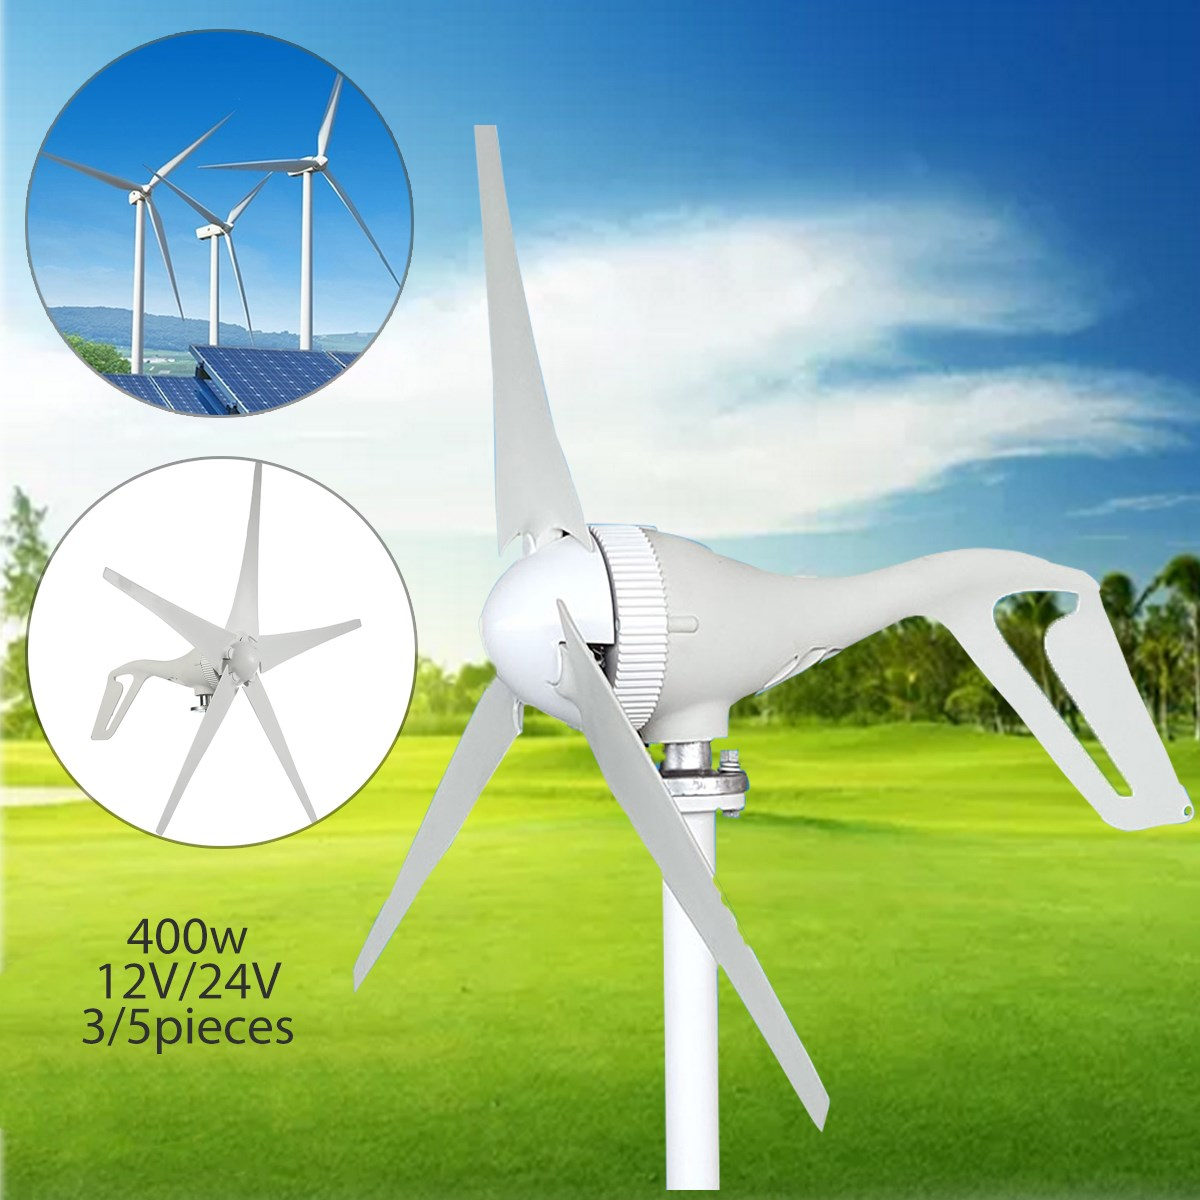 2018 Hot Sale 400W 12/24V Wind Generator Automatic Adjustable 3/5 Blades Wind Generator For Home Or Marine Power Supply